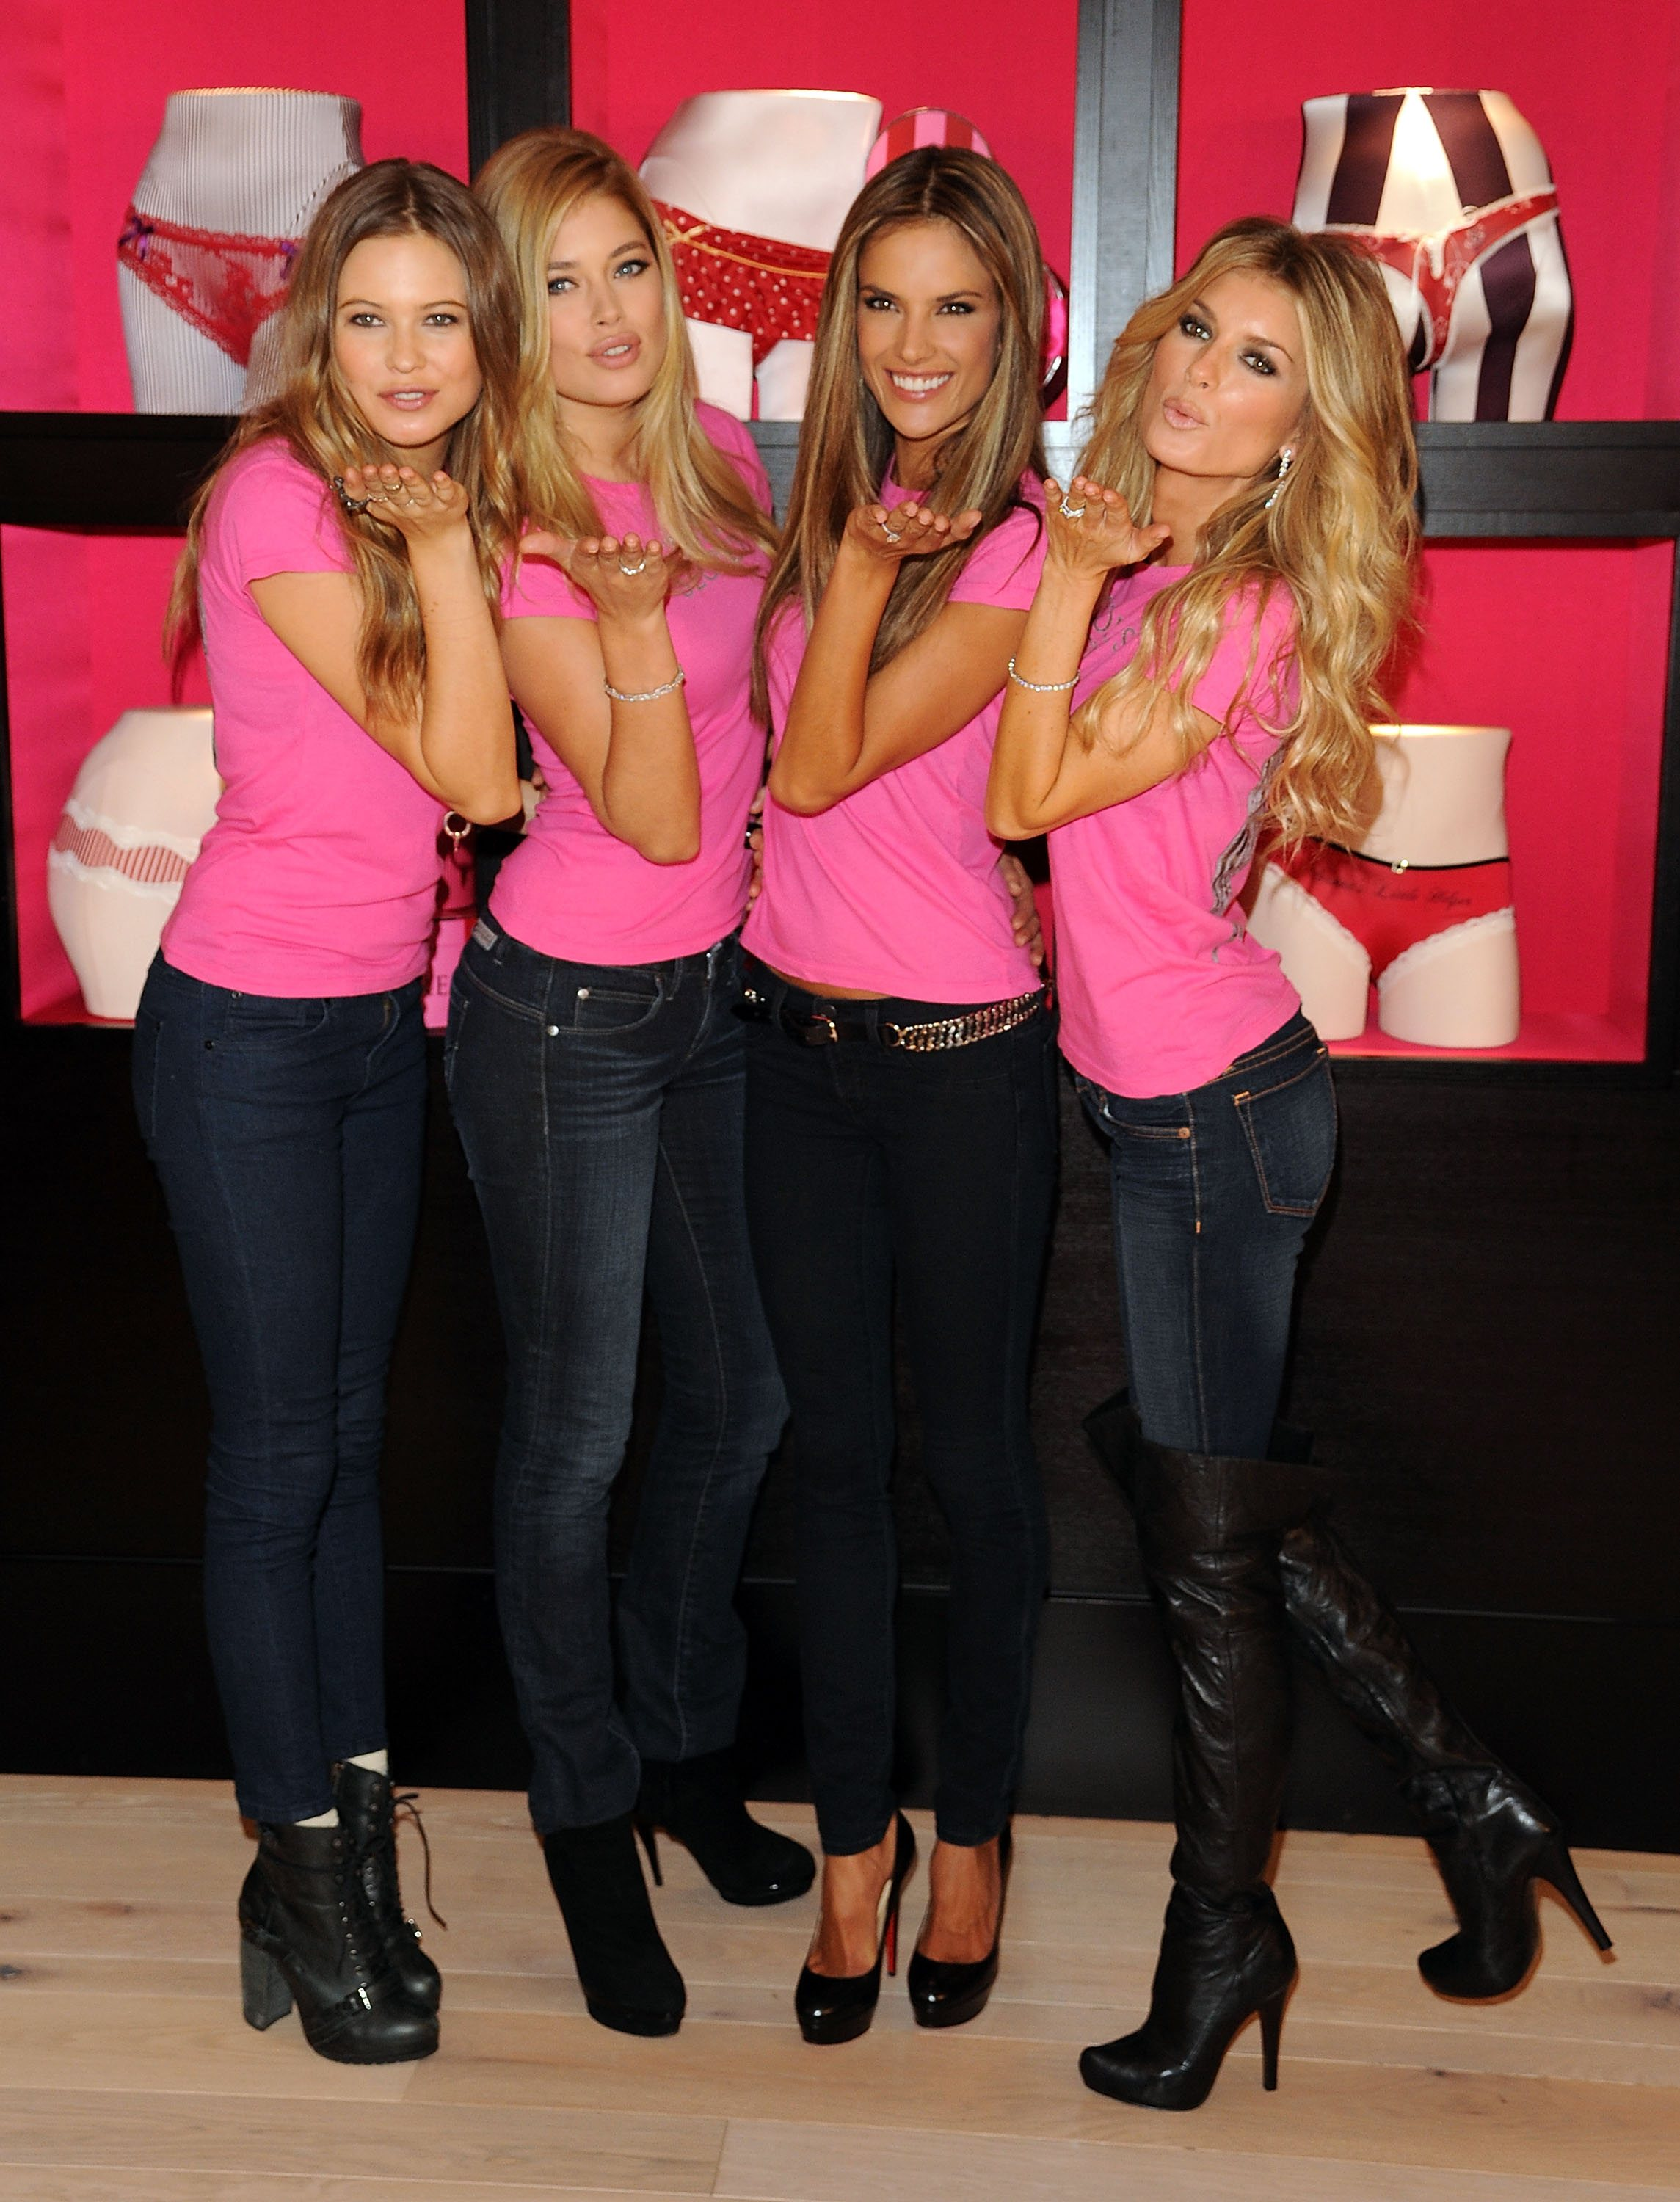 Victoria's Secret Fashion 2001-2009 4 000 HQ-UHQ